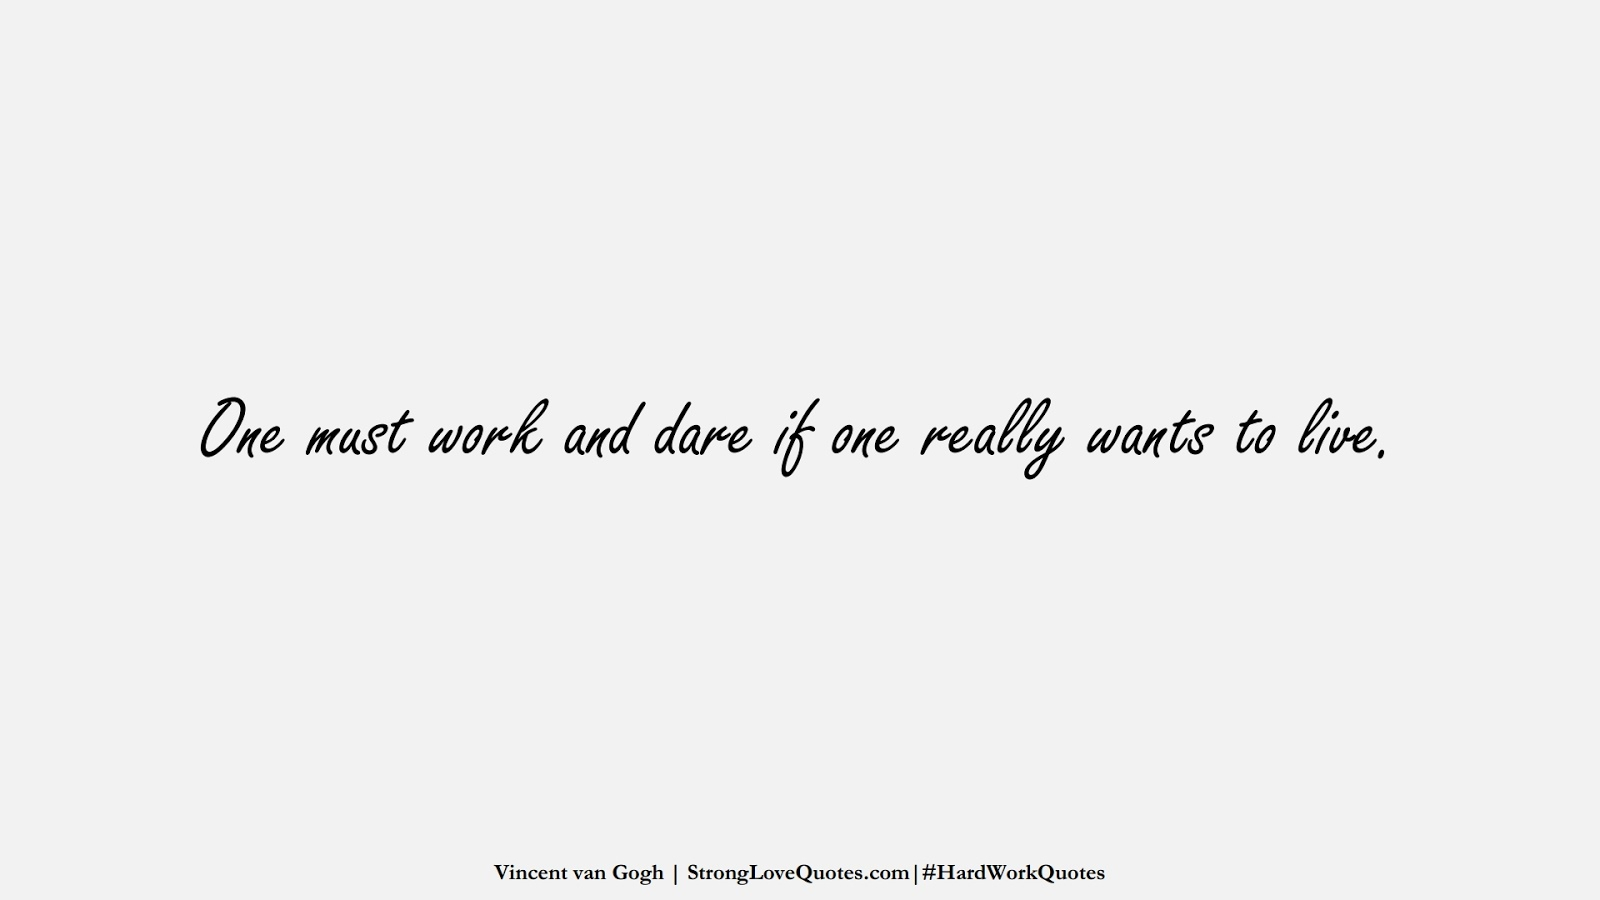 One must work and dare if one really wants to live. (Vincent van Gogh);  #HardWorkQuotes